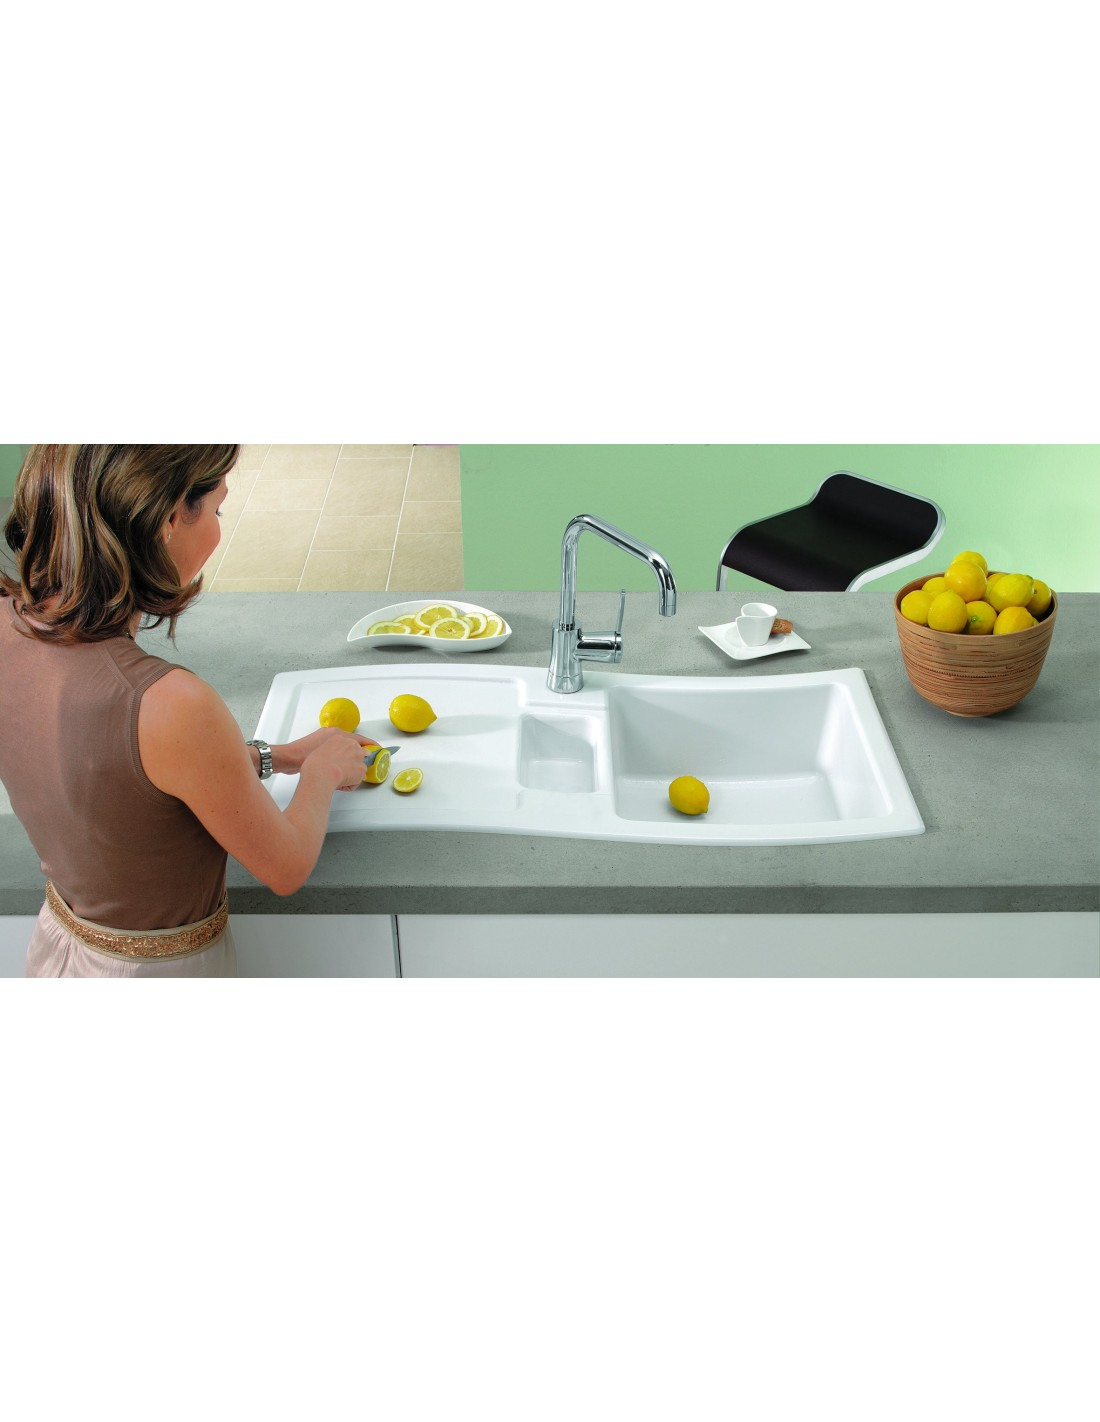 new wave ceramic sink by villeroy boch 1 5 bowl. Black Bedroom Furniture Sets. Home Design Ideas